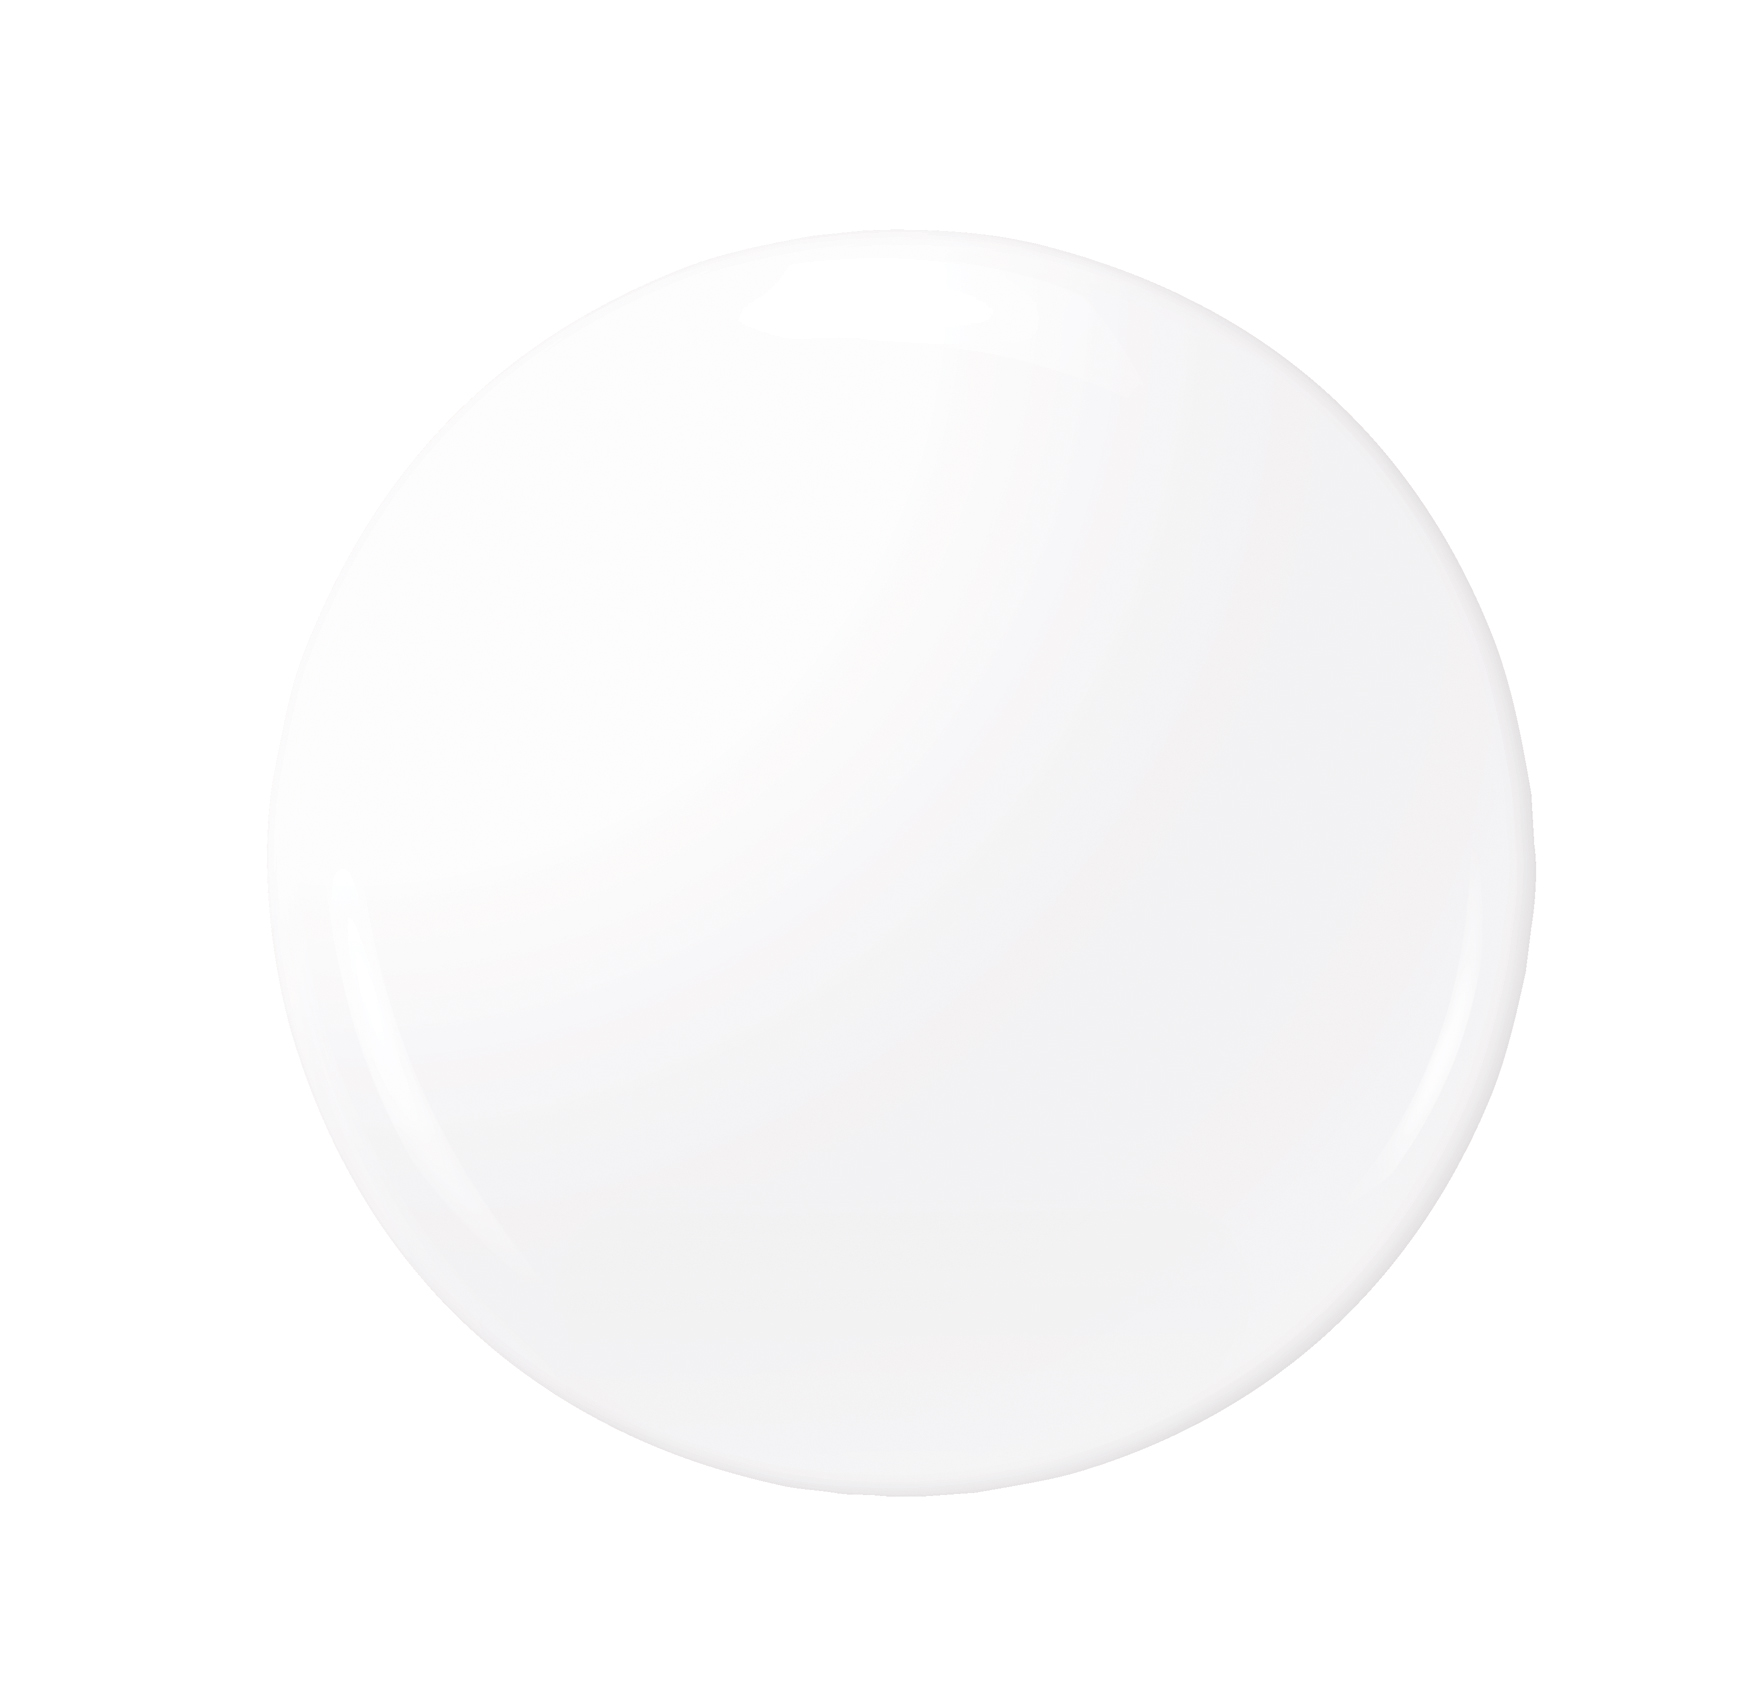 Zoya Naked Manicure White Tip Perfector product-reel